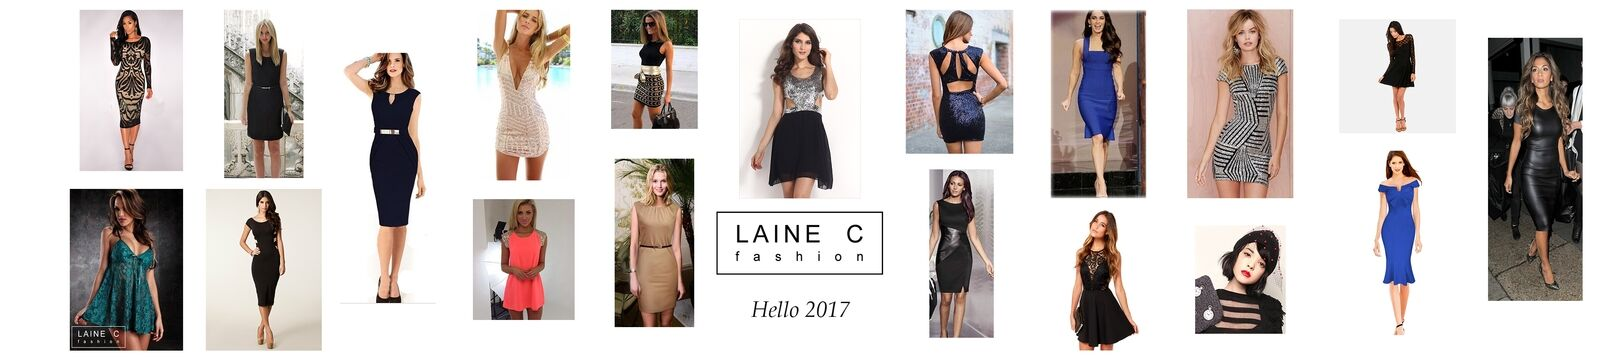 LAINE Clubbing fashion